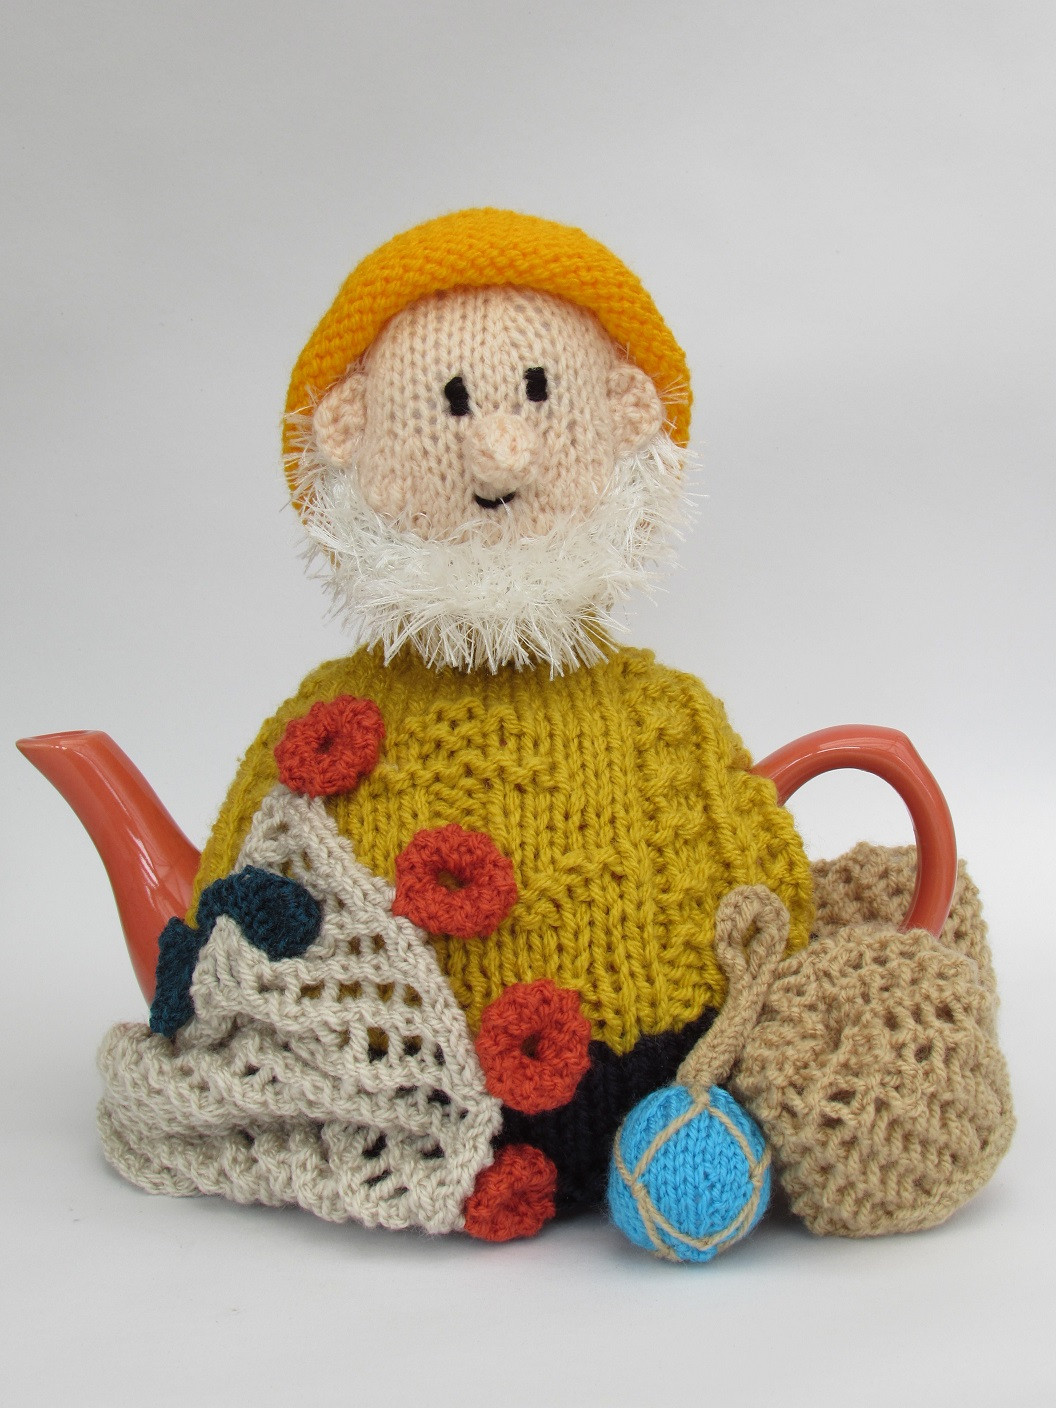 Tea Cosy Patterns New Tea Cosy Knitting Patterns From Tea Cosy Folk Learn How Of Innovative 44 Models Tea Cosy Patterns